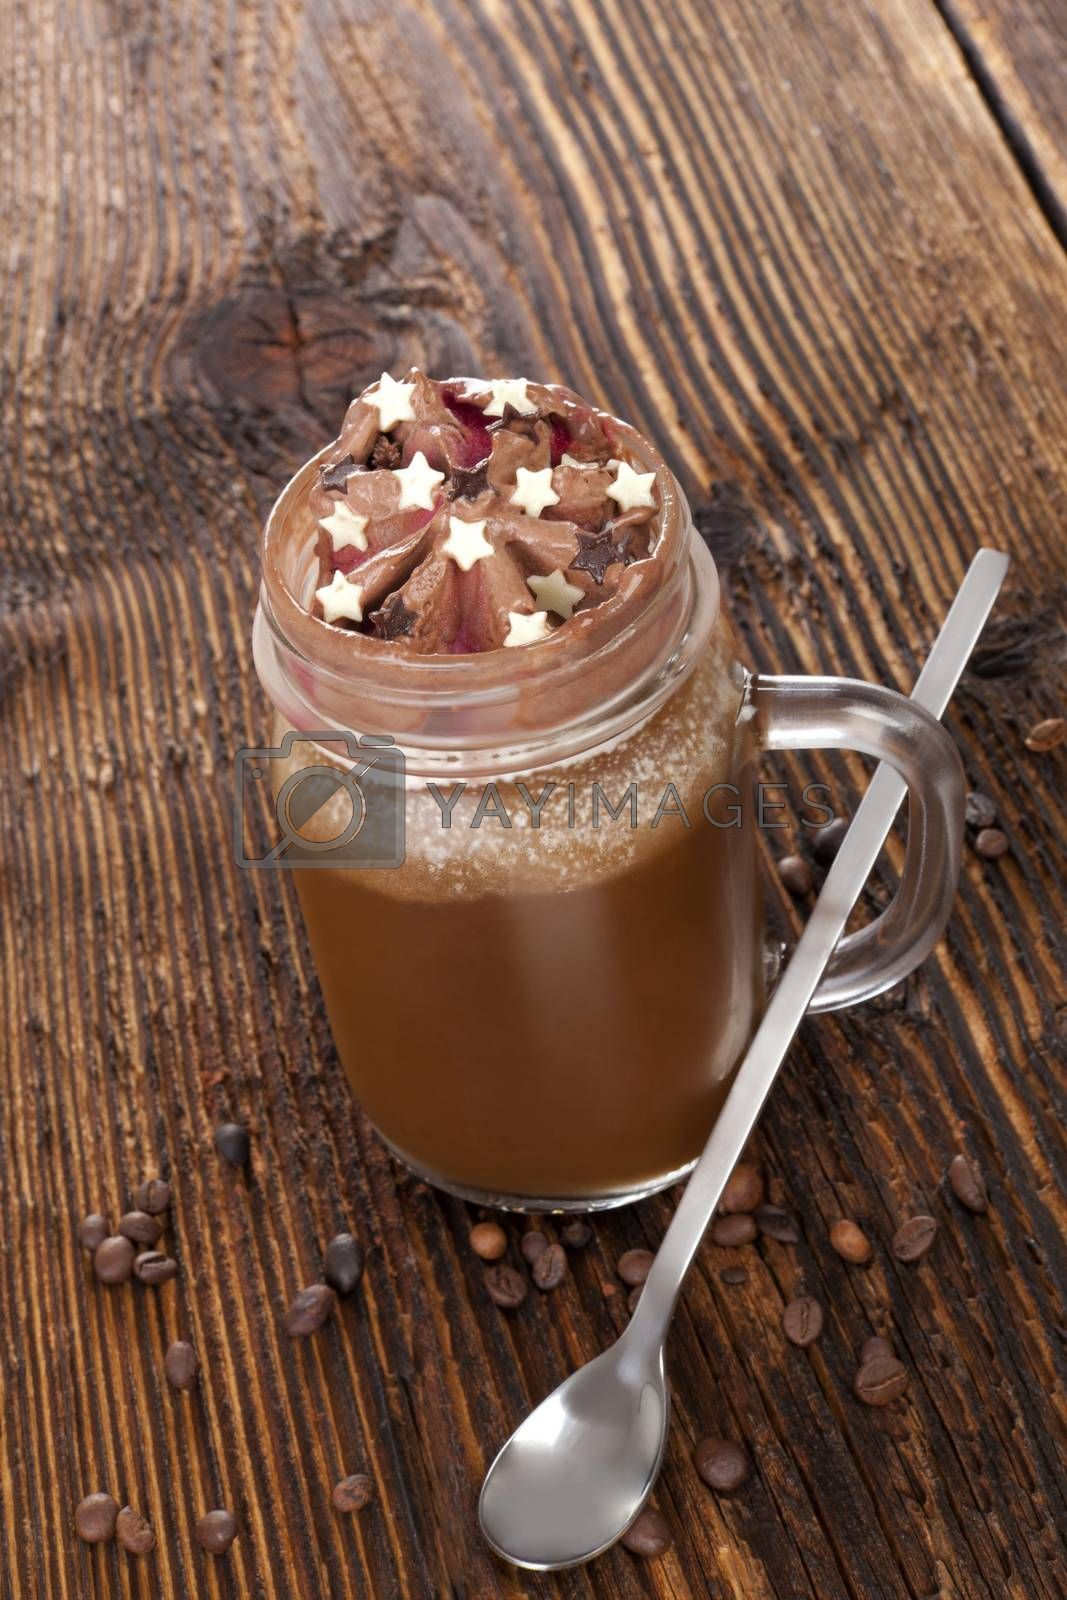 Hot chocolate on wooden table. Delicious cocoa drink.